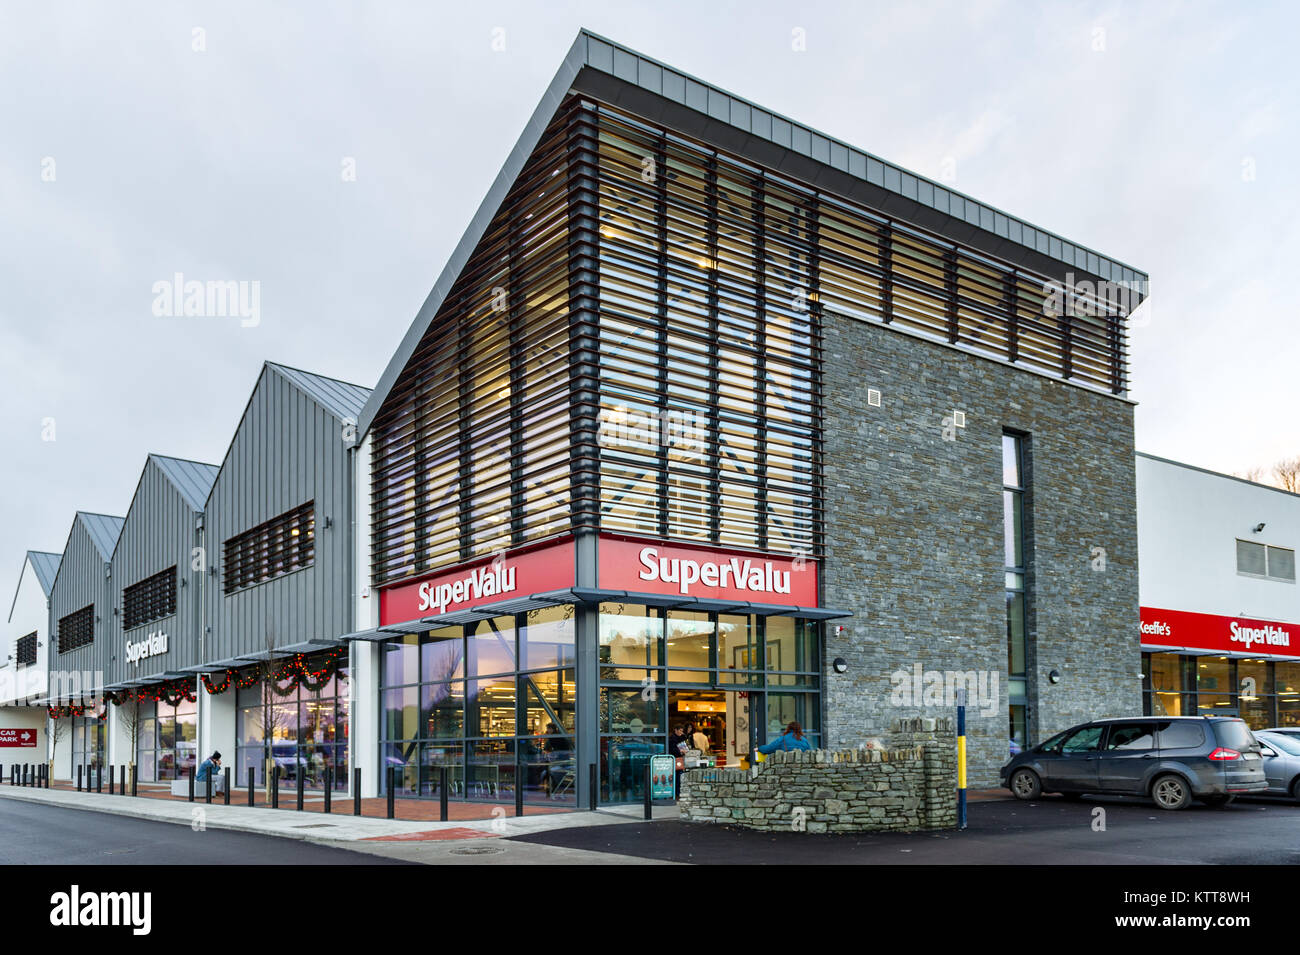 newly-built-supervalu-supermarket-in-bantry-county-cork-ireland-with-KTT8WH.jpg